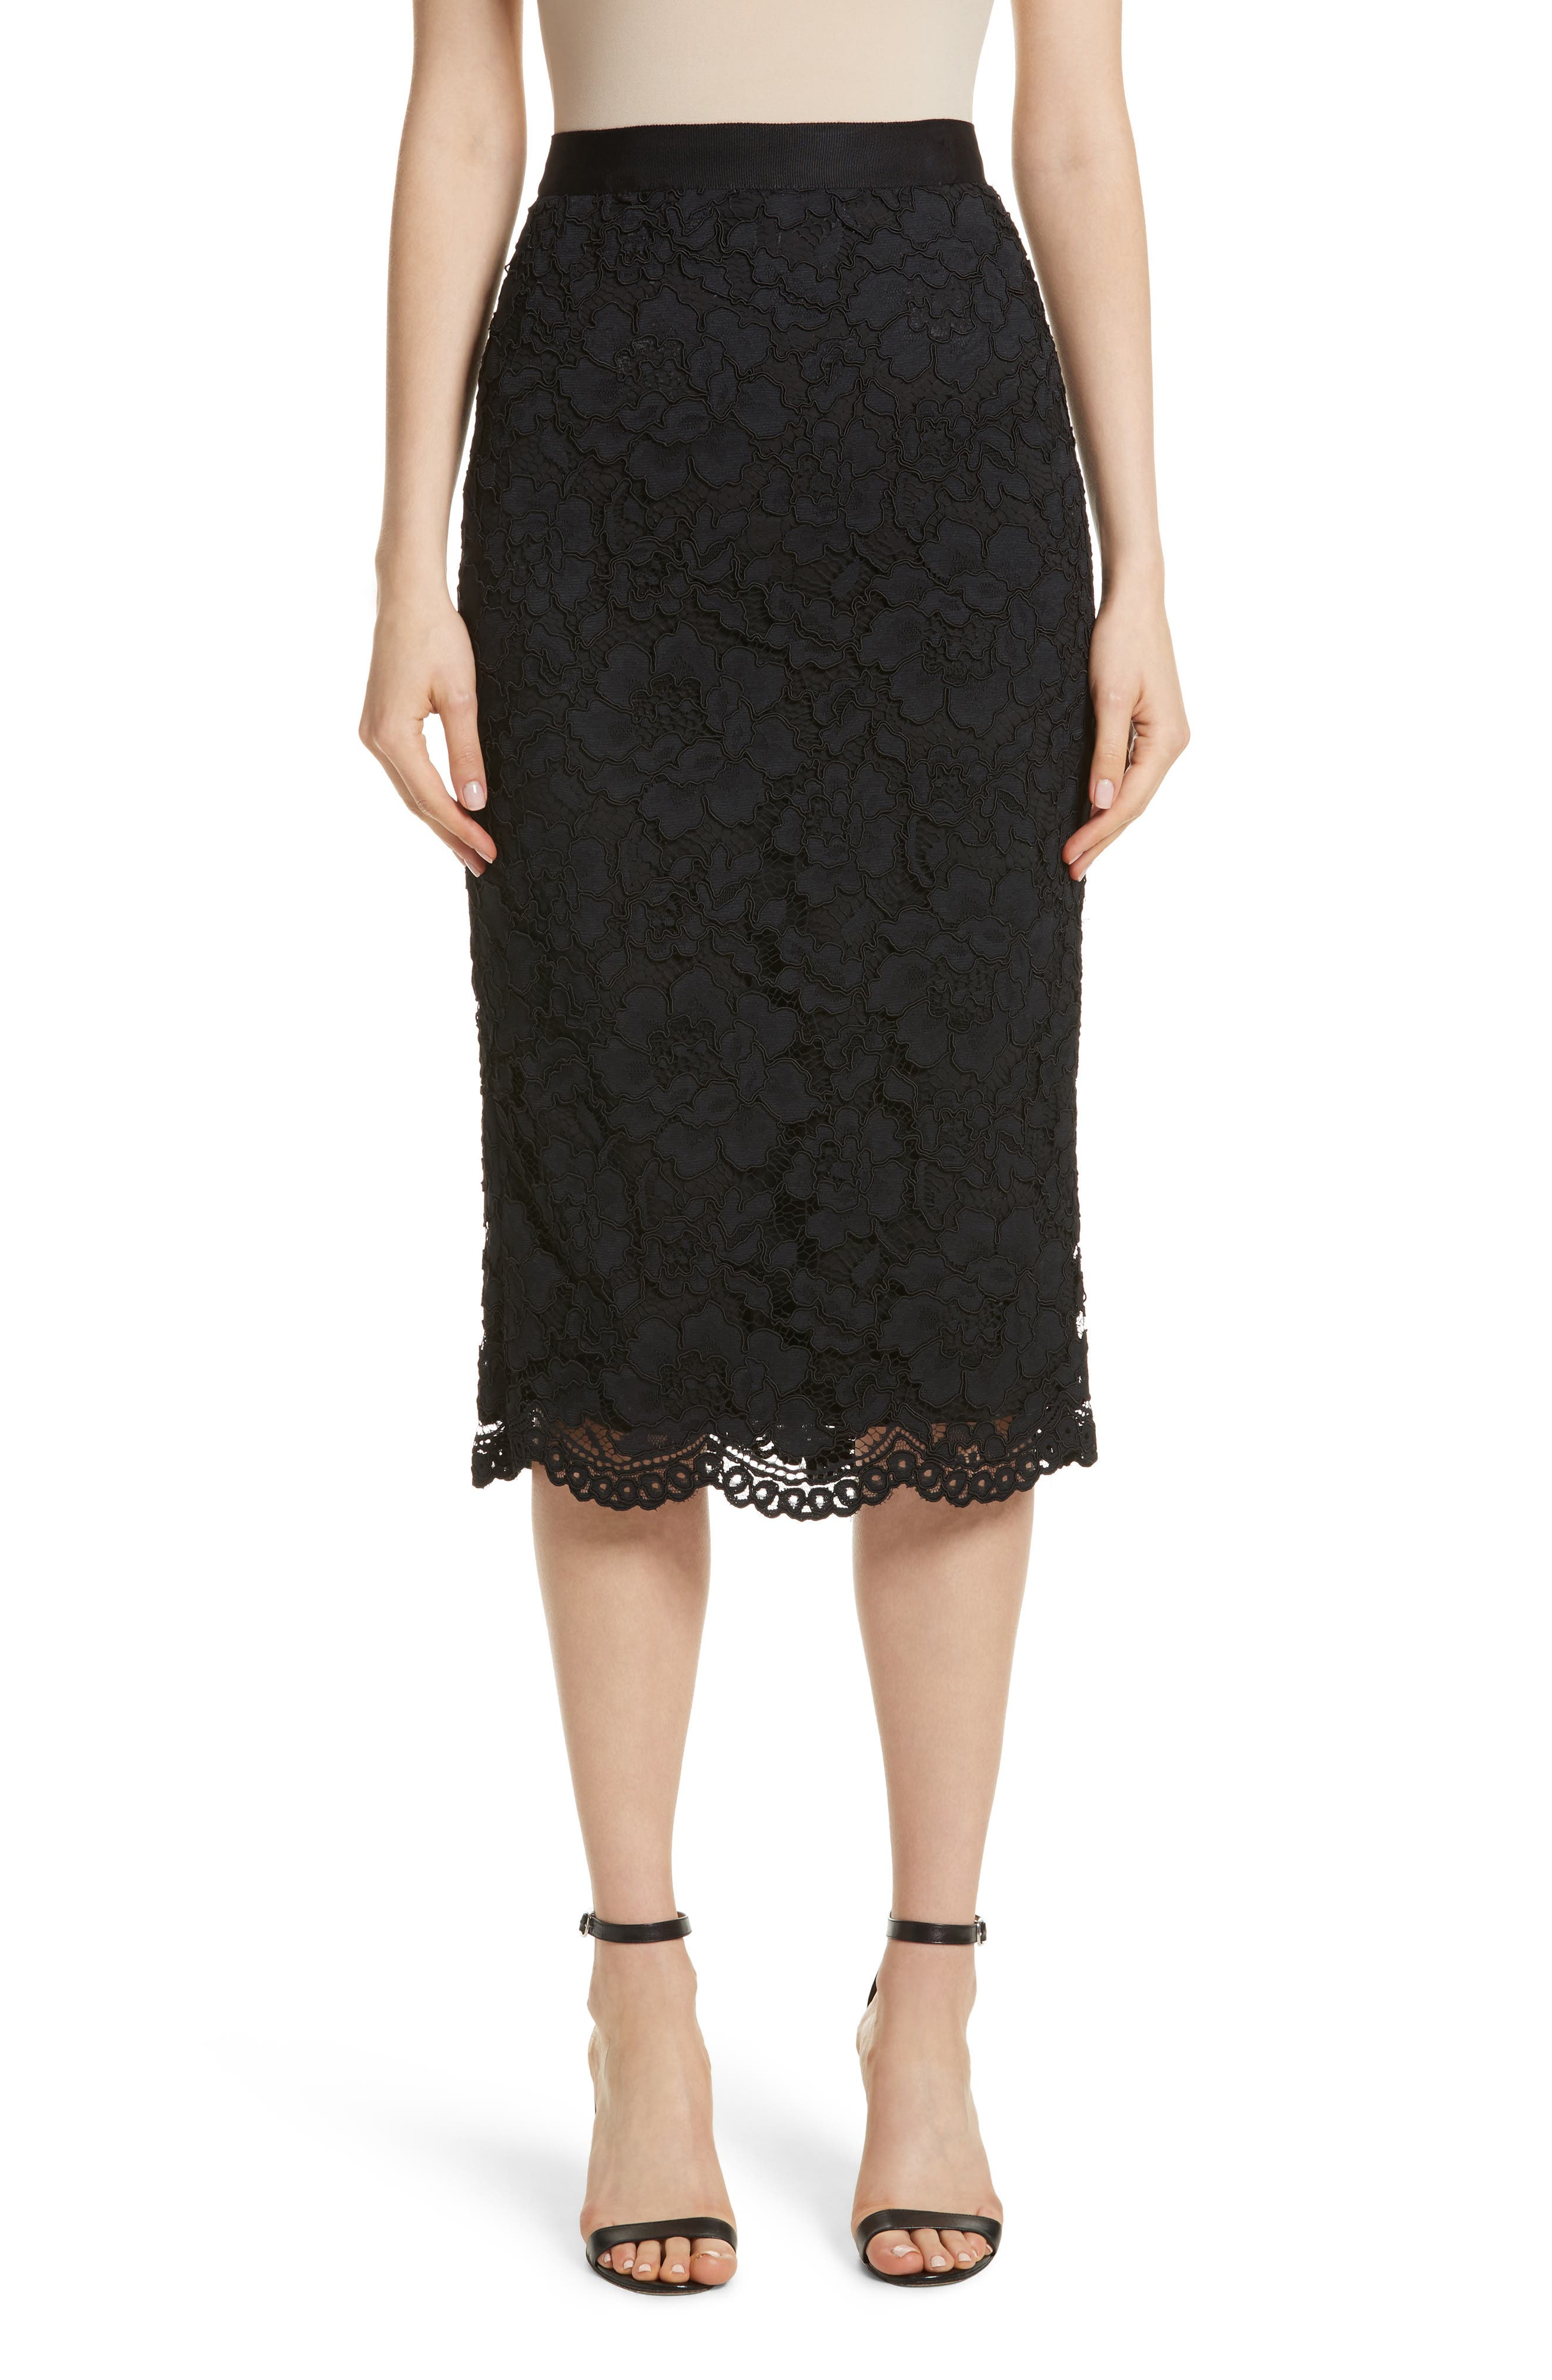 Black Lace Pencil Skirt, Beige Lace Pencil Skirt, Mauve Lace Pencil Skirts. KENANCY Womens Lace Mermaid Midi Pencil Skirt Knee Length Stretch Wear to Work Skirts. by KENANCY. $ - $ $ 13 $ 16 99 Prime. FREE Shipping on eligible orders. Some sizes are Prime eligible. 5 out of 5 stars 1.